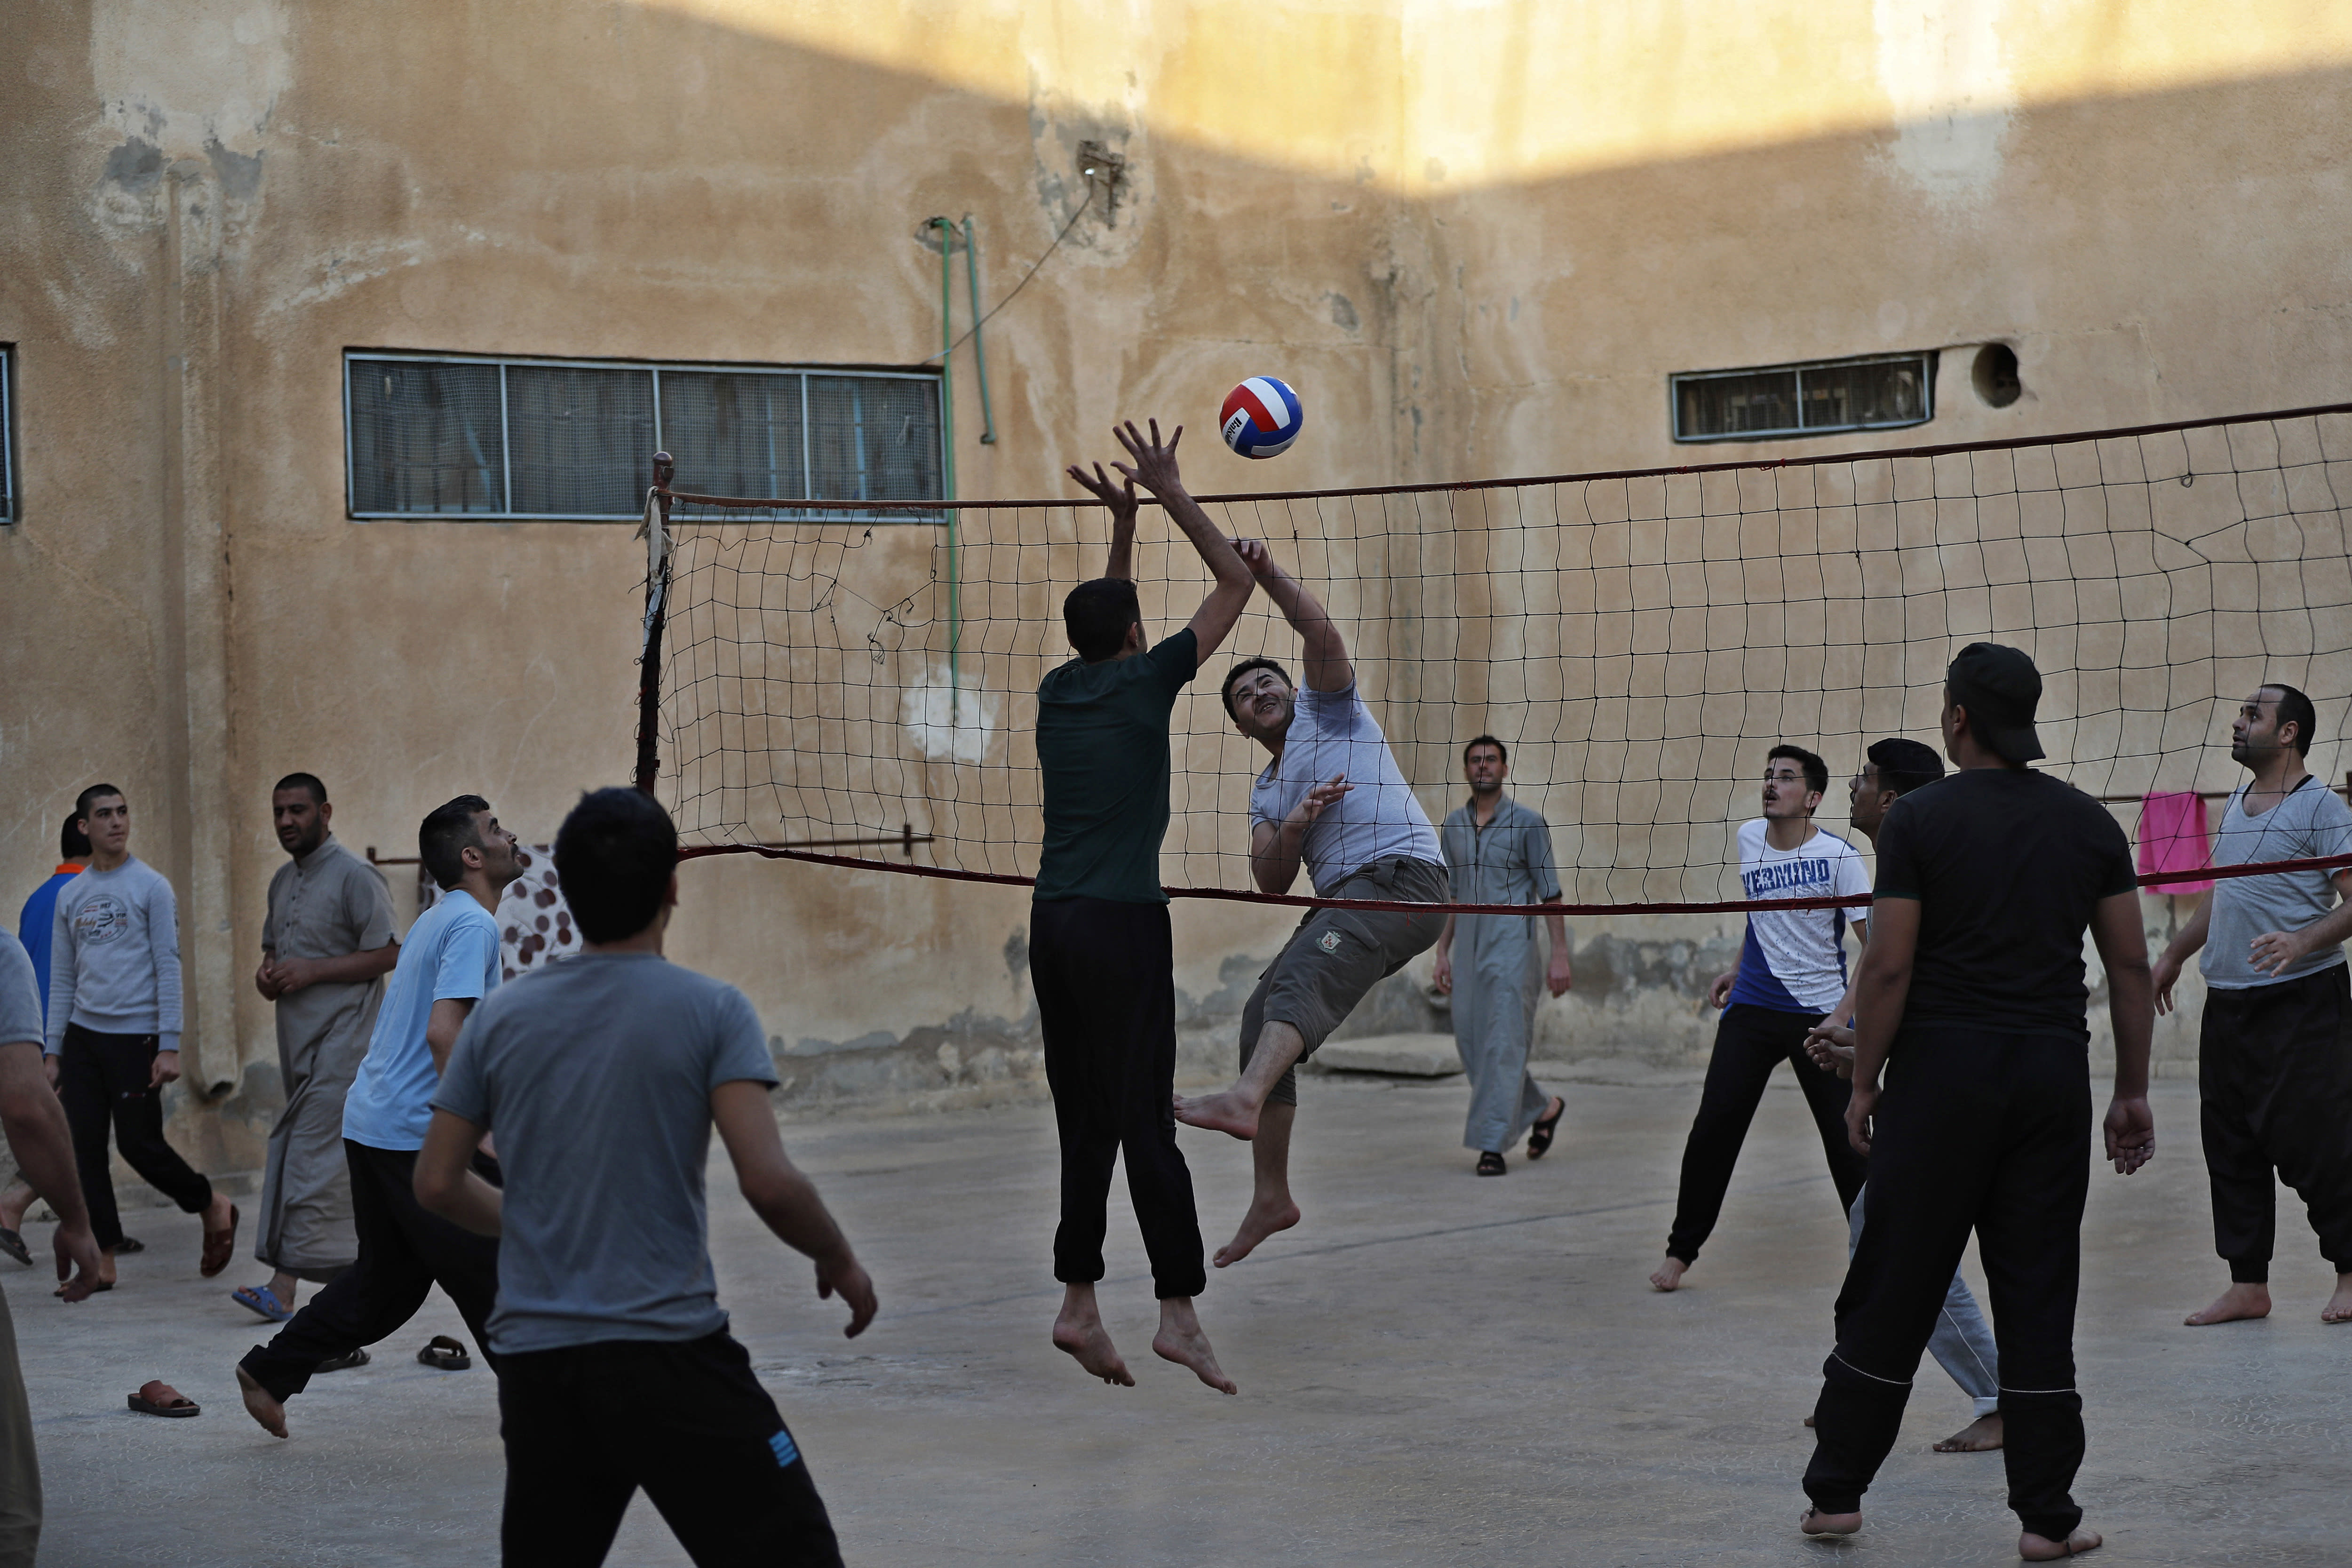 CAPTION ADDITION: ADDS DETAILS ABOUT WHICH PRISON HAD RIOTS: FILE - In this April 3, 2018, file photo, prisoners play volleyball in a Kurdish-run prison housing former members of the Islamic State group, in Qamishli, northern Syria. A spokesman for Kurdish-led forces in northeastern Syria said Monday, March. 30, 2020, that they have put an end to riots by Islamic State militants in a prison there. The riots broke out late on Sunday in a prison in the town of Hassakeh and lasted several hours. Kurdish authorities run more than two dozen detention facilities scattered around northeastern Syria, holding about 10,000 IS fighters. (AP Photo/Hussein Malla, File)